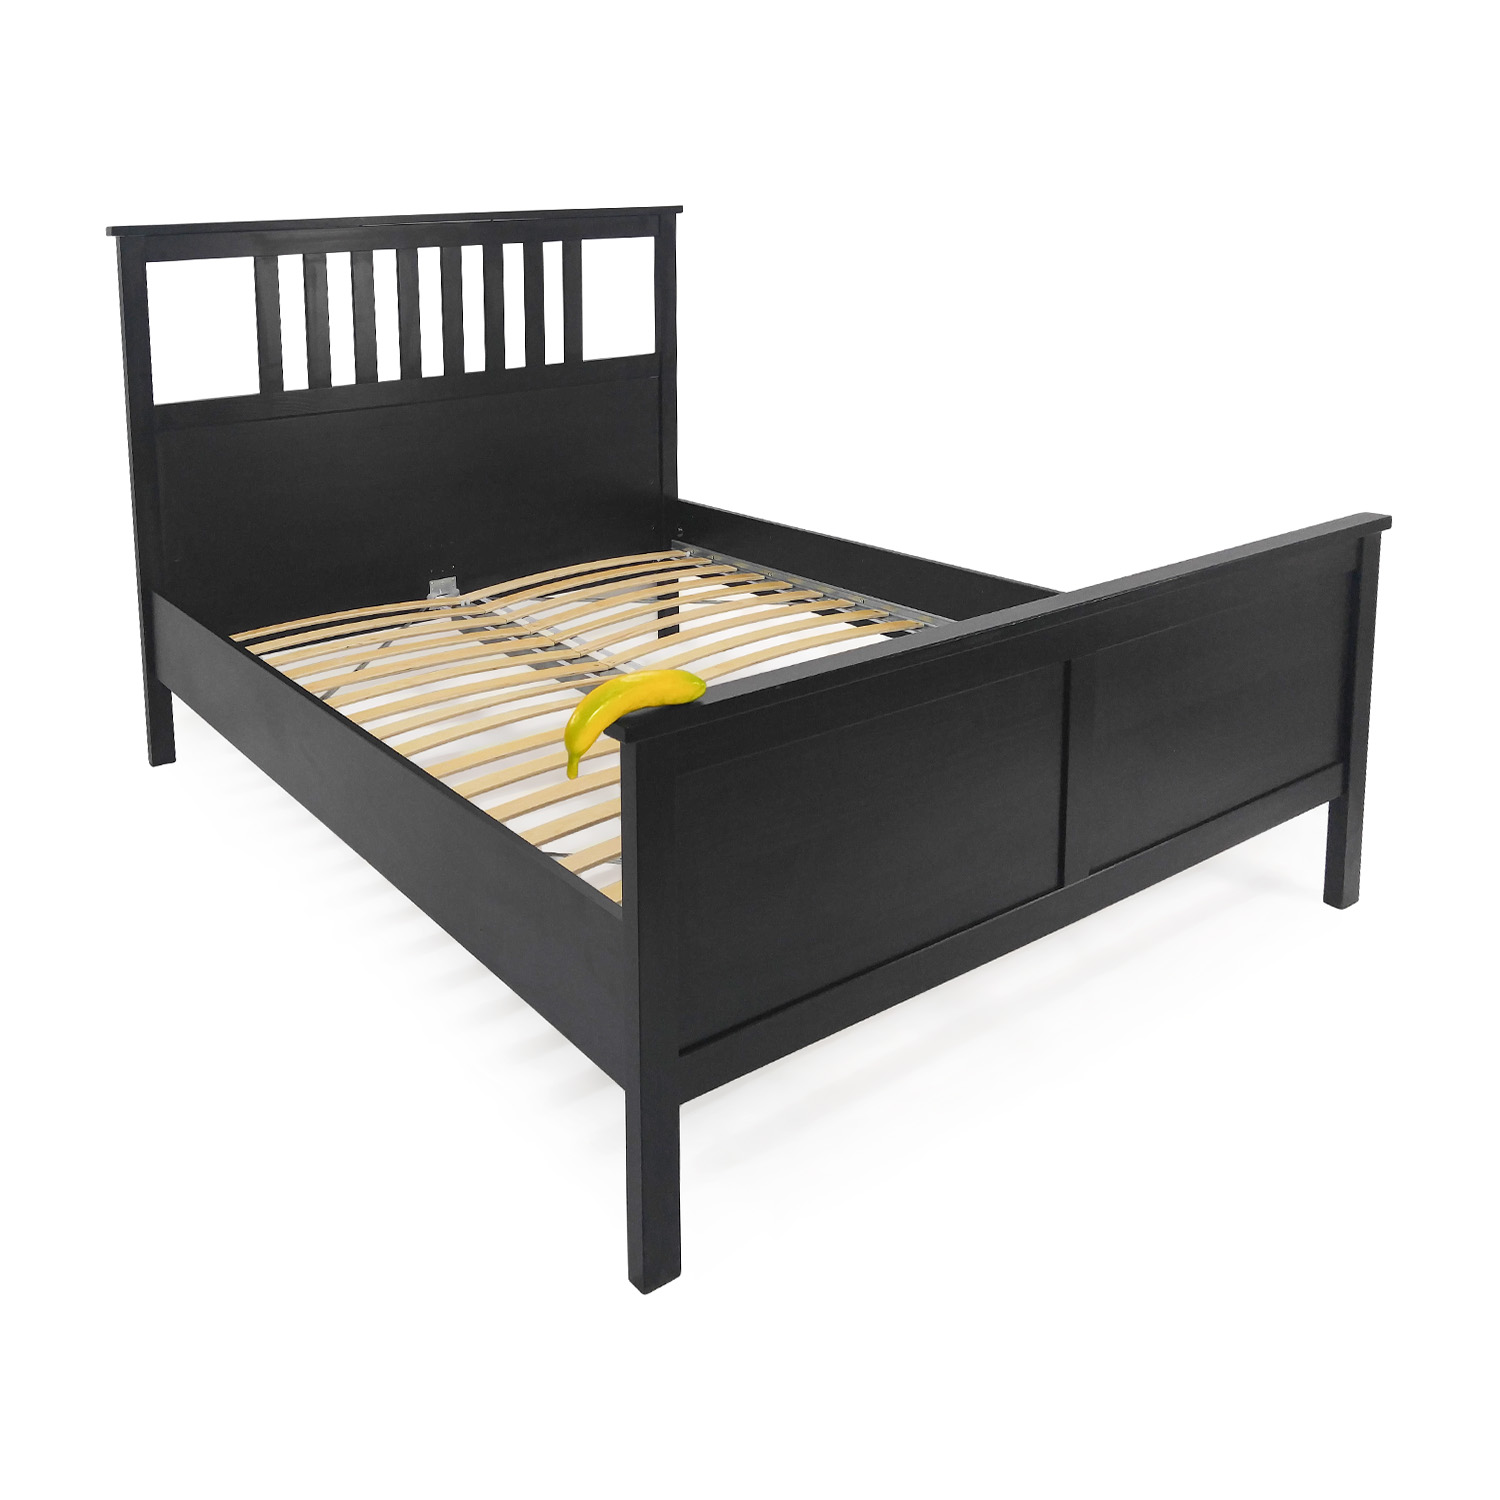 90 off ikea ikea dark chocolate queen bed frame beds. Black Bedroom Furniture Sets. Home Design Ideas